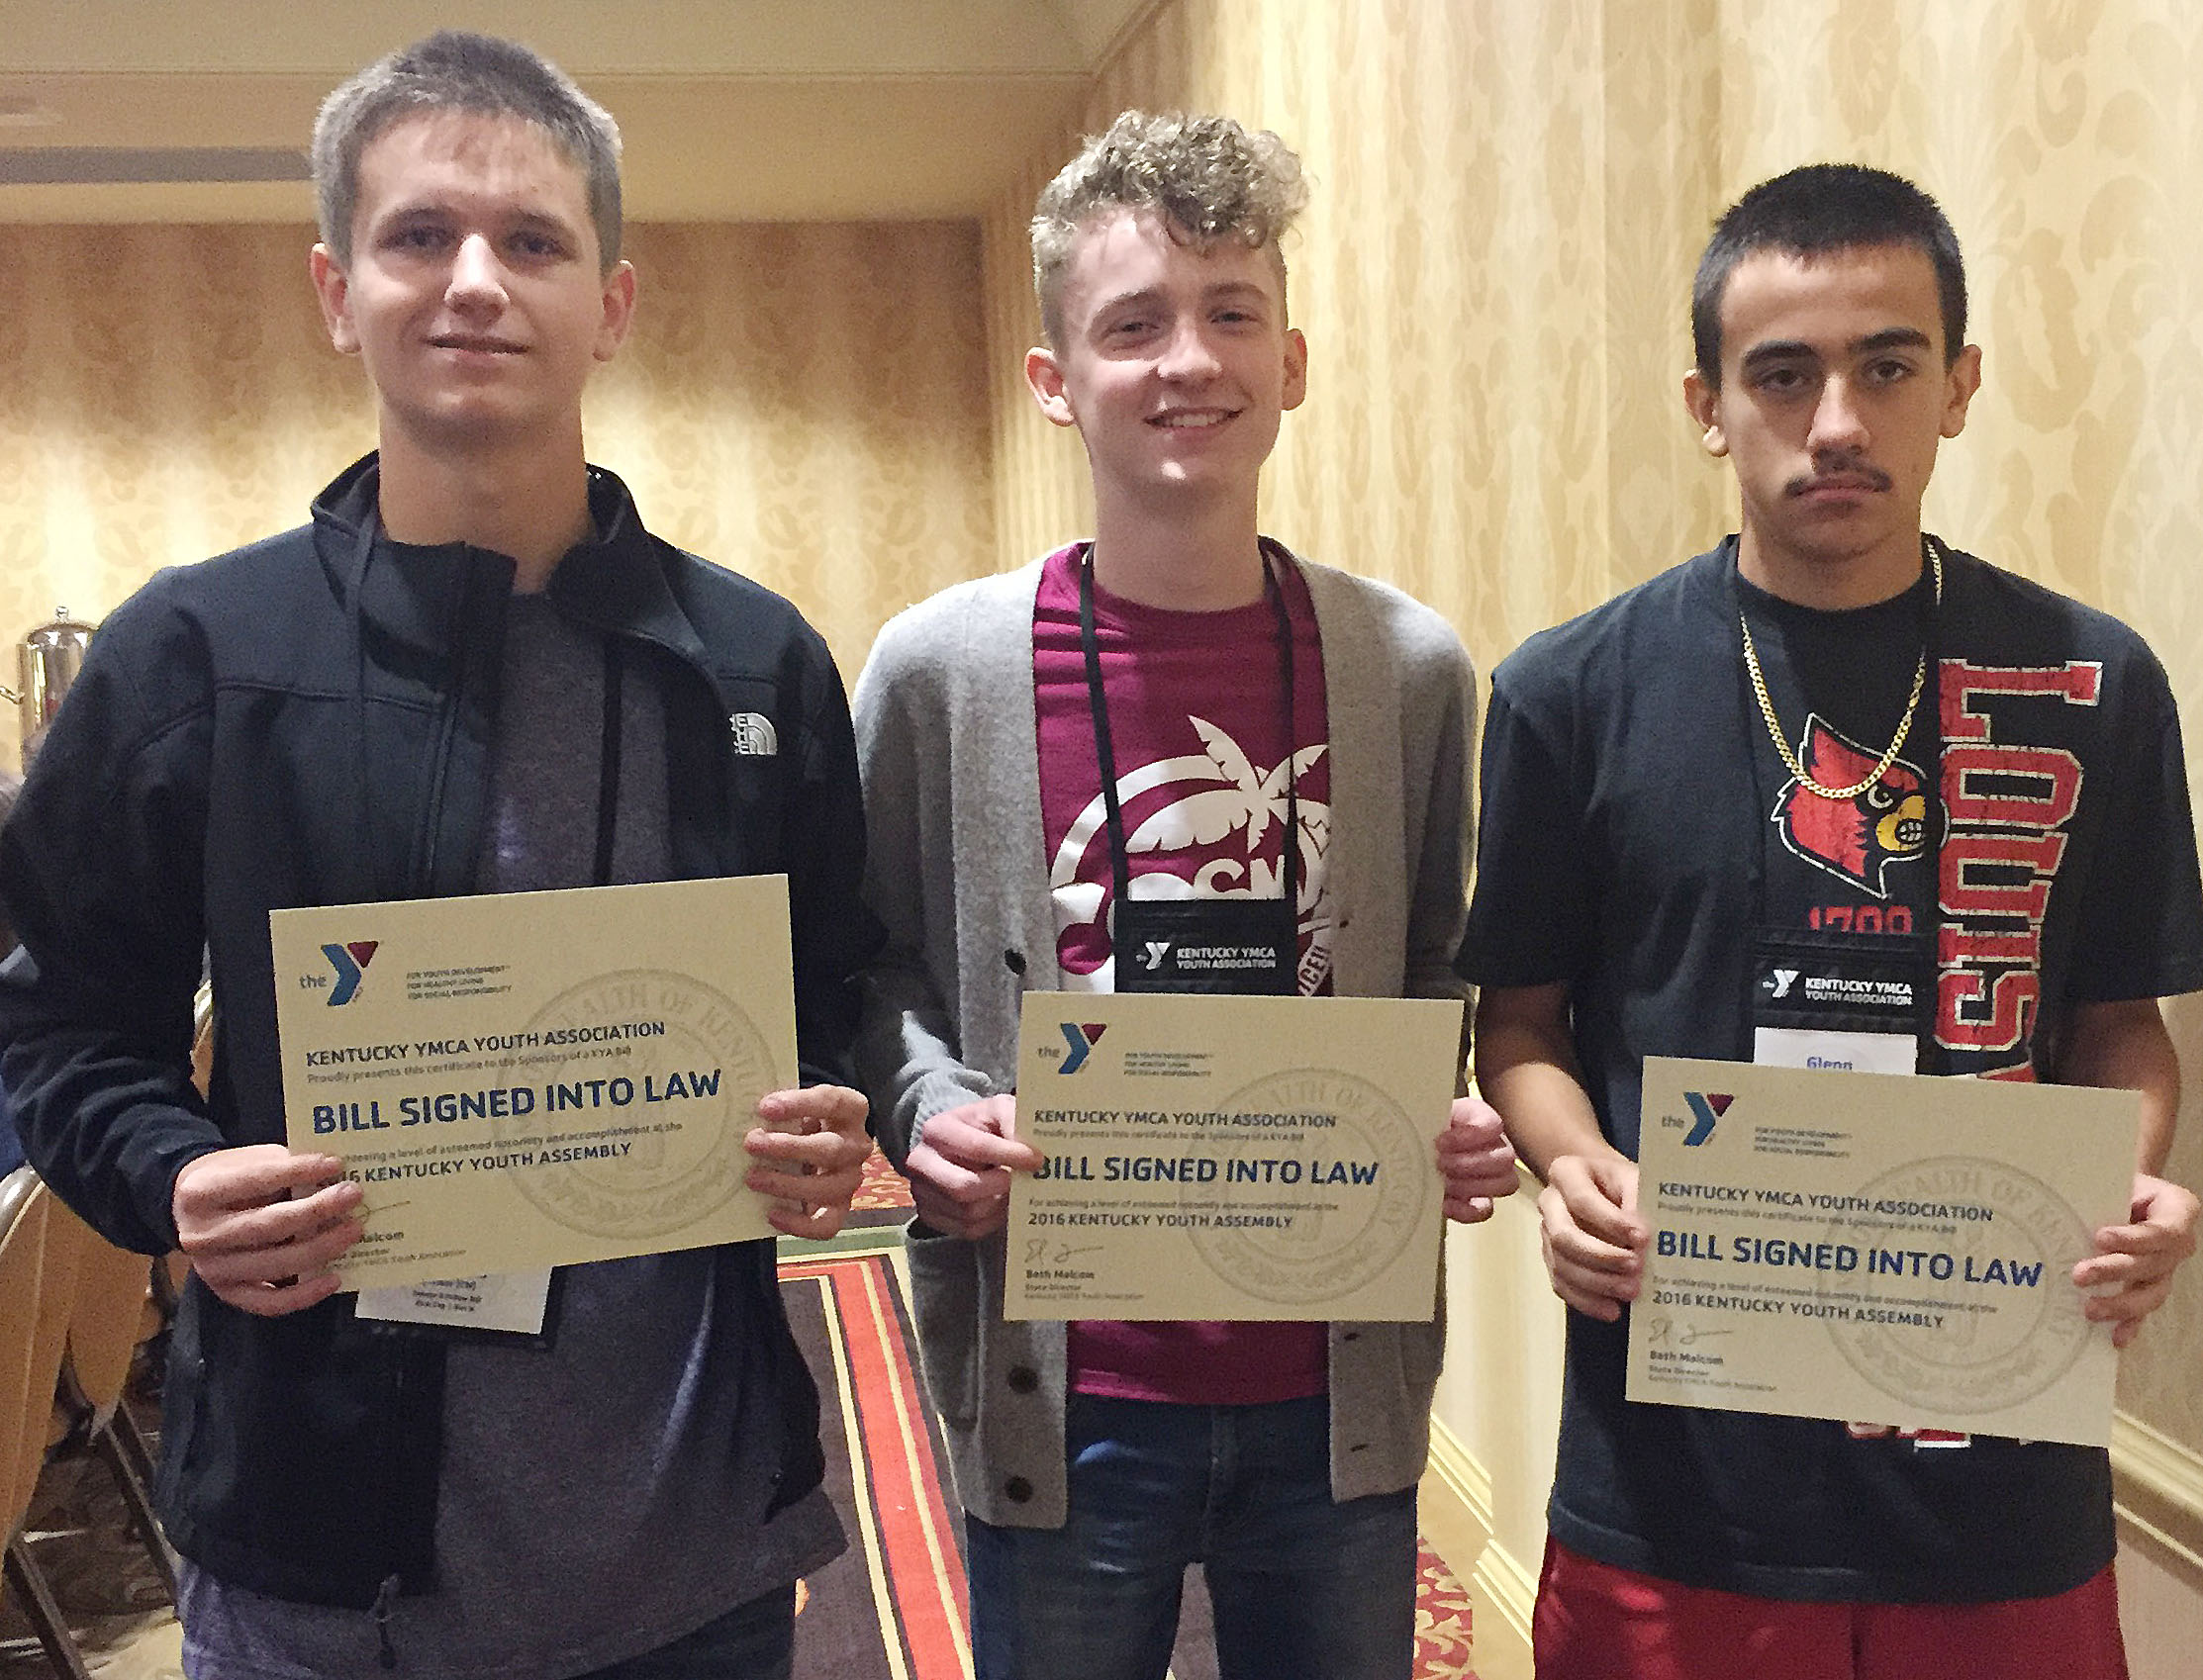 CHS sophomores, from left, Myles Murrell, Jackson Hinton and Glenn Lamer authored a bill that was signed into law at this year's KYA session.